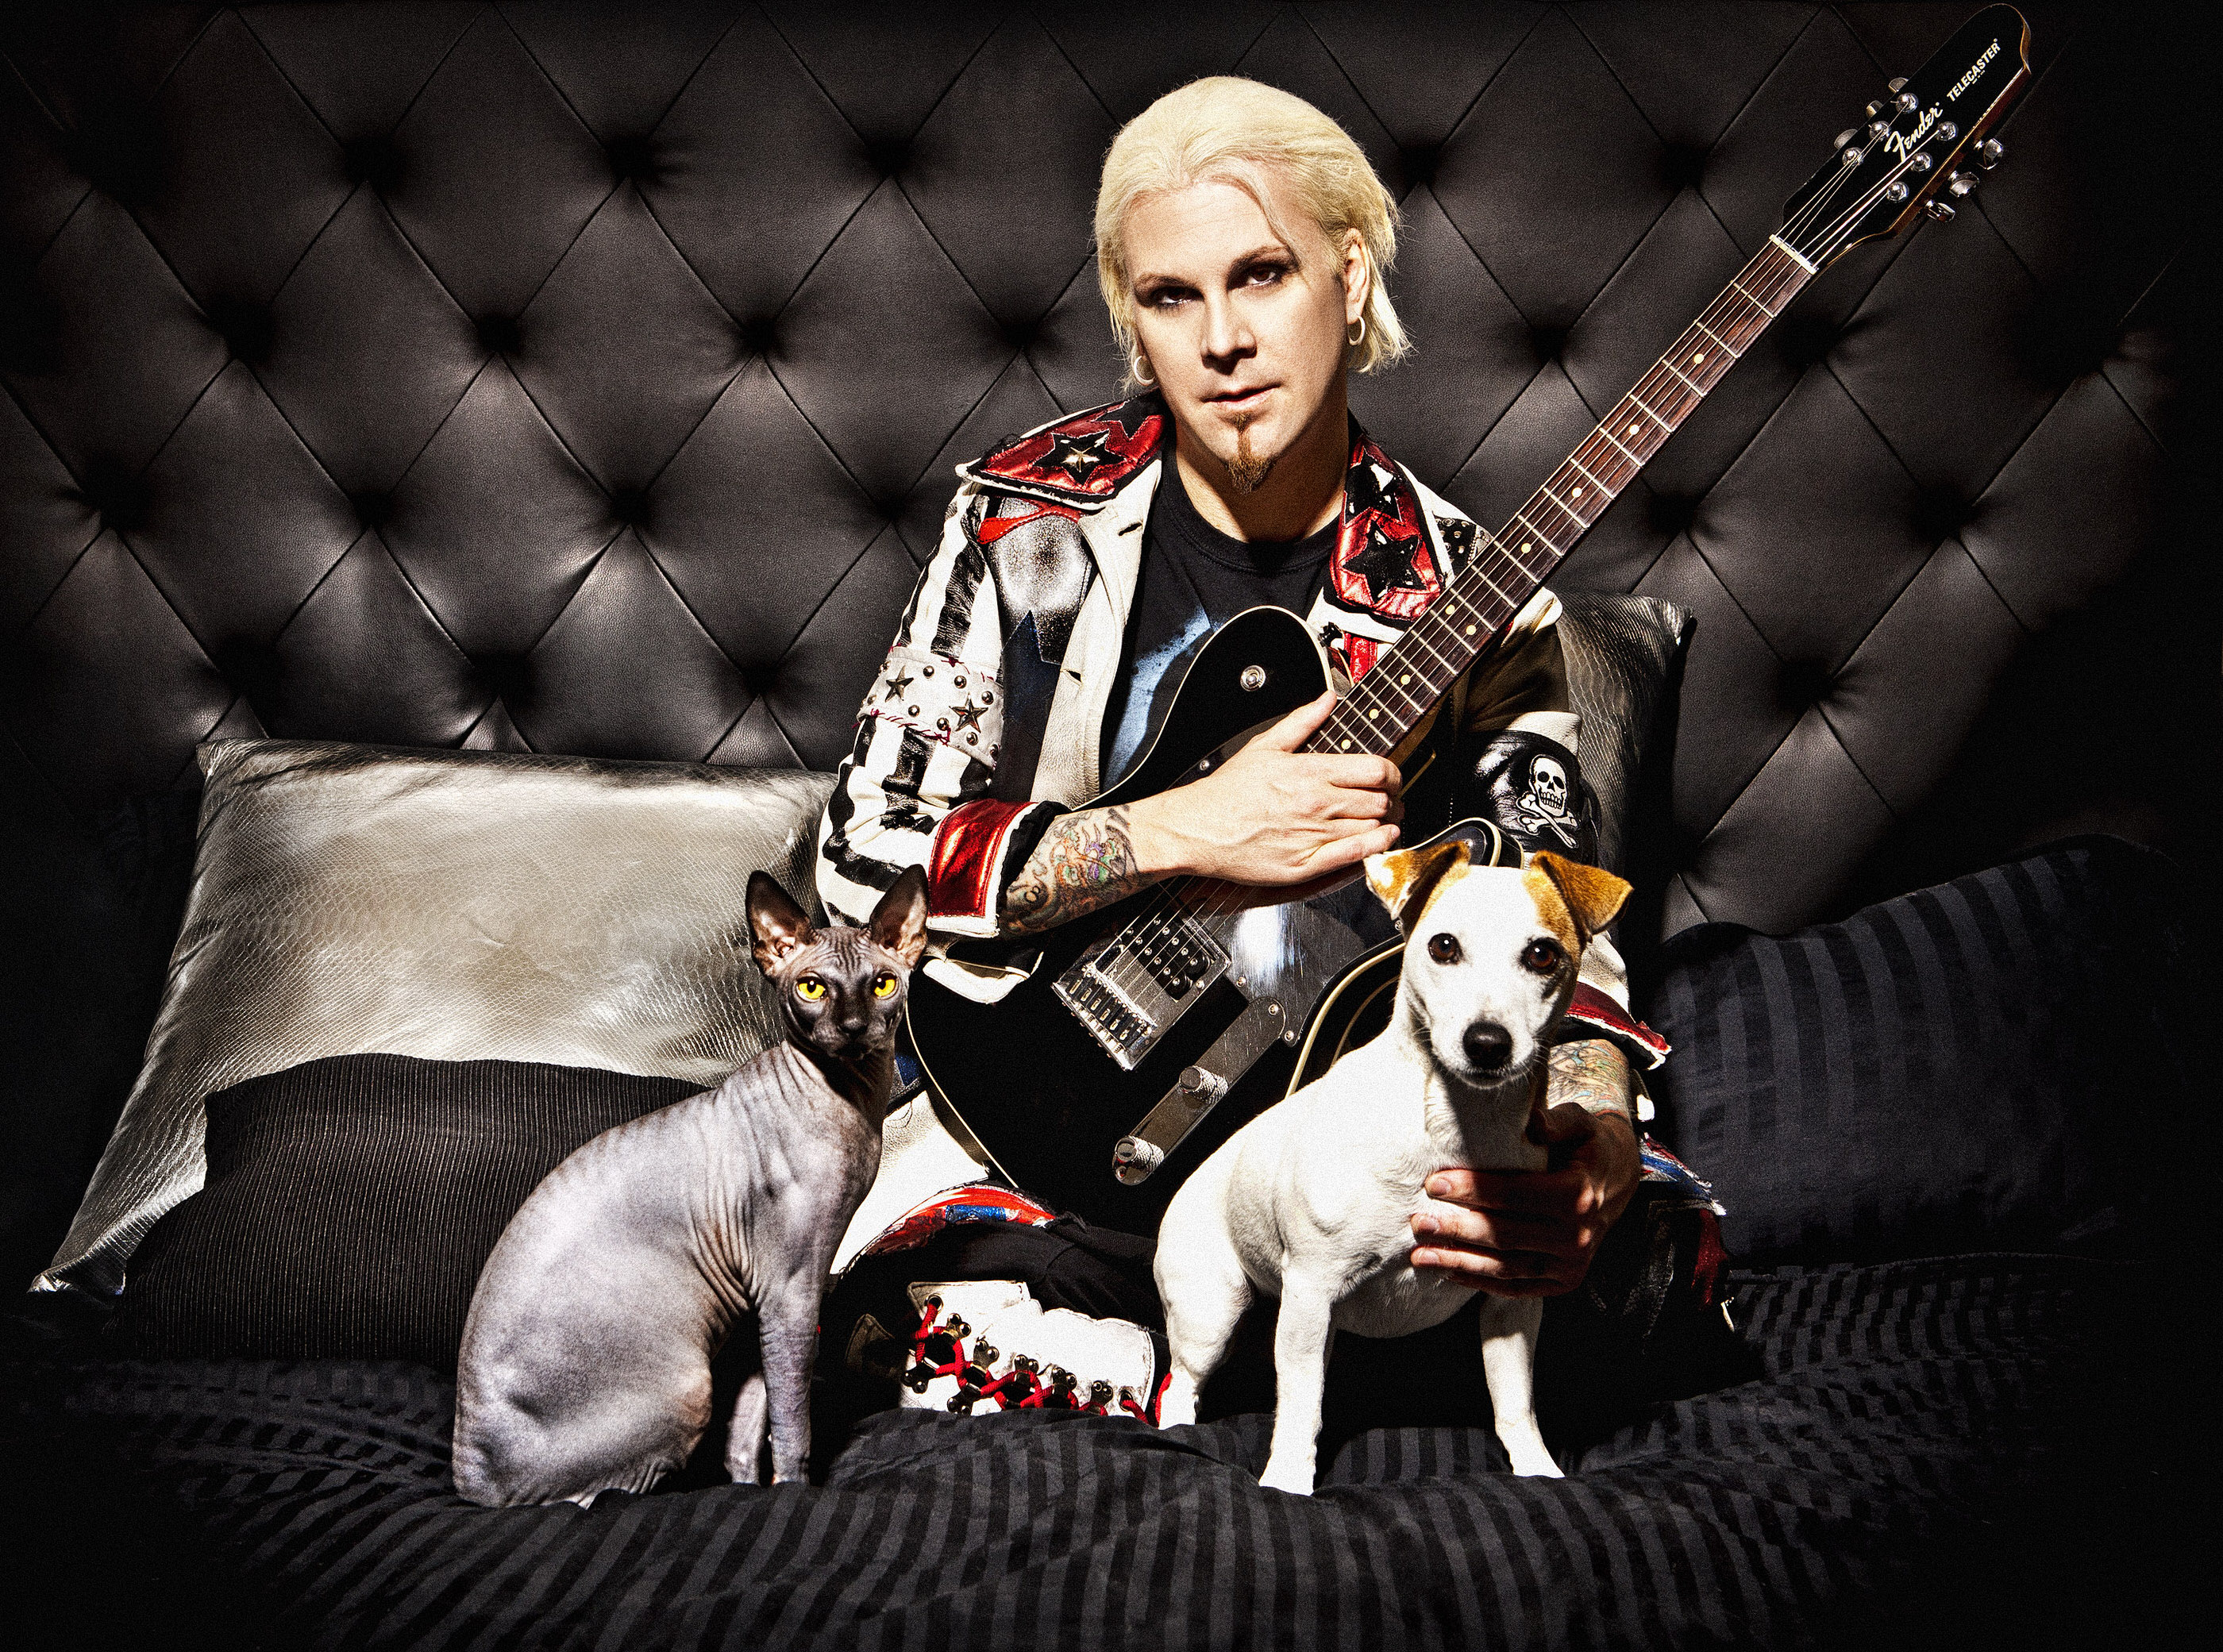 John 5 & Pets by Ash Newell Photography